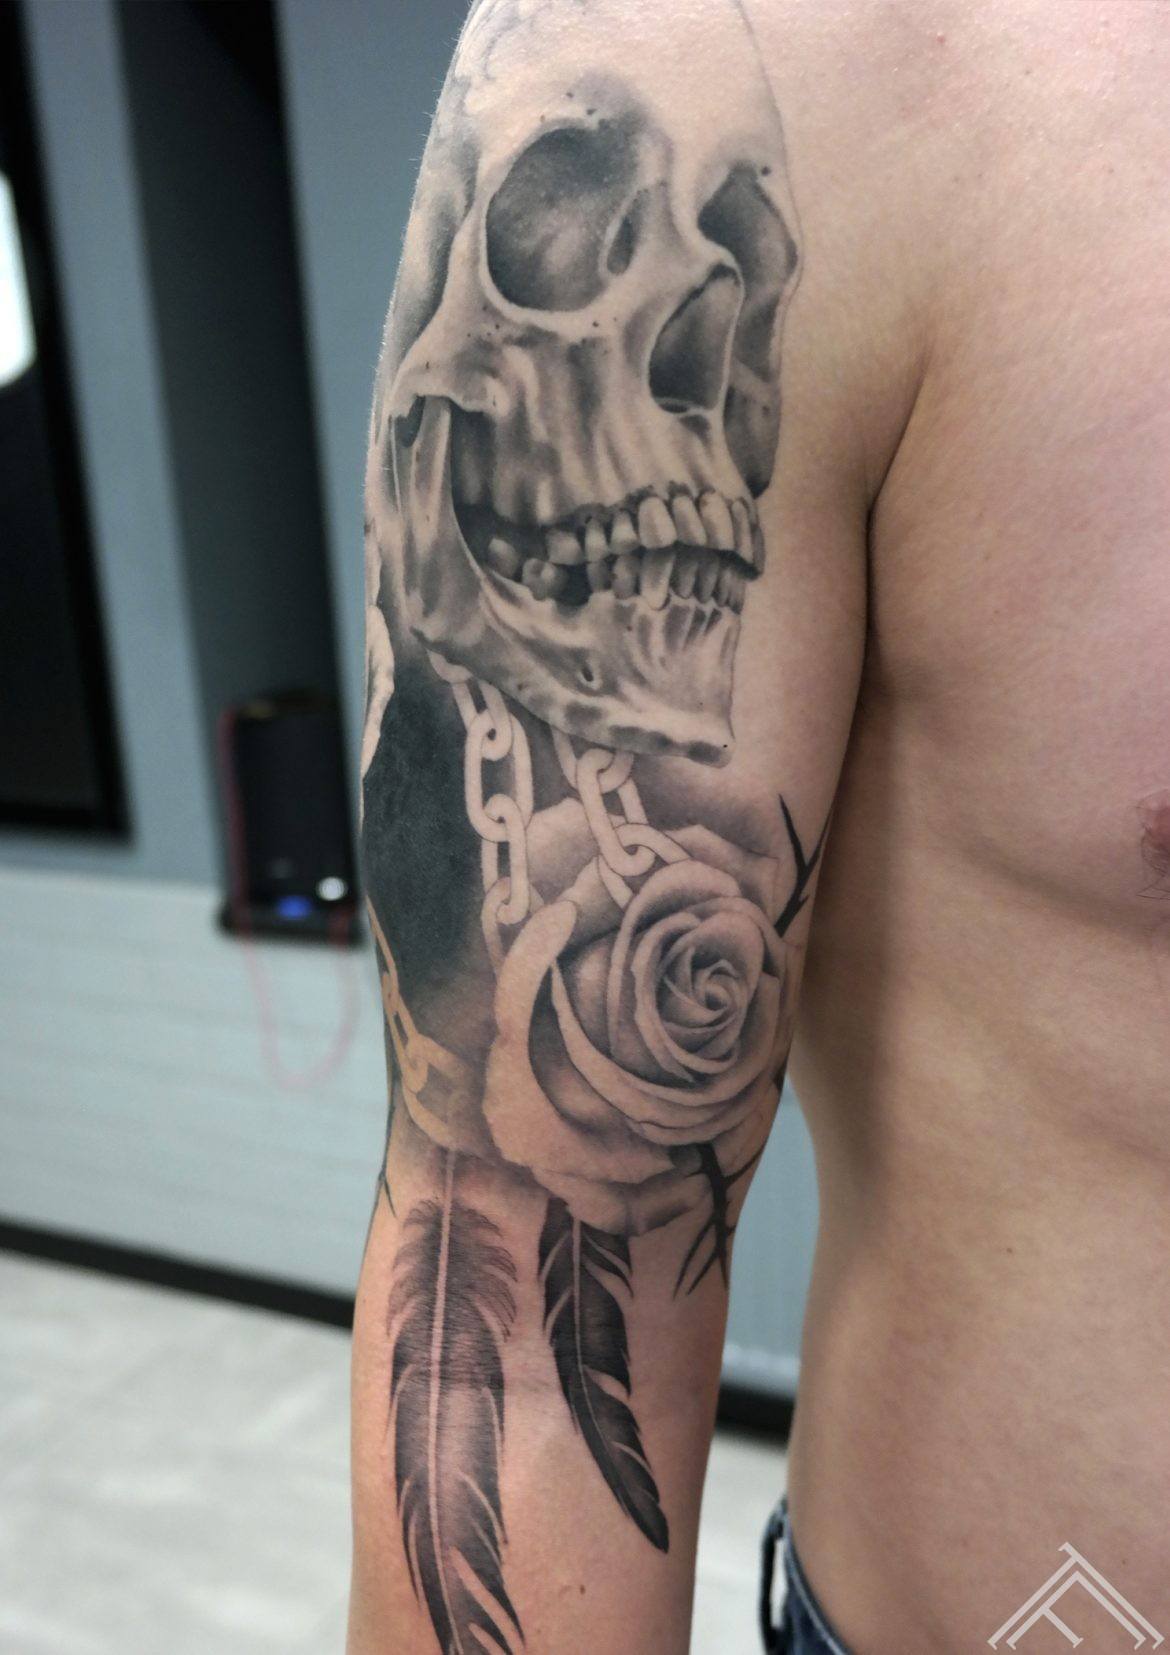 skull-rose-feather-galvaskauss-spalva-roze-tetovejums-janissvars-tattoofrequency-riga-art